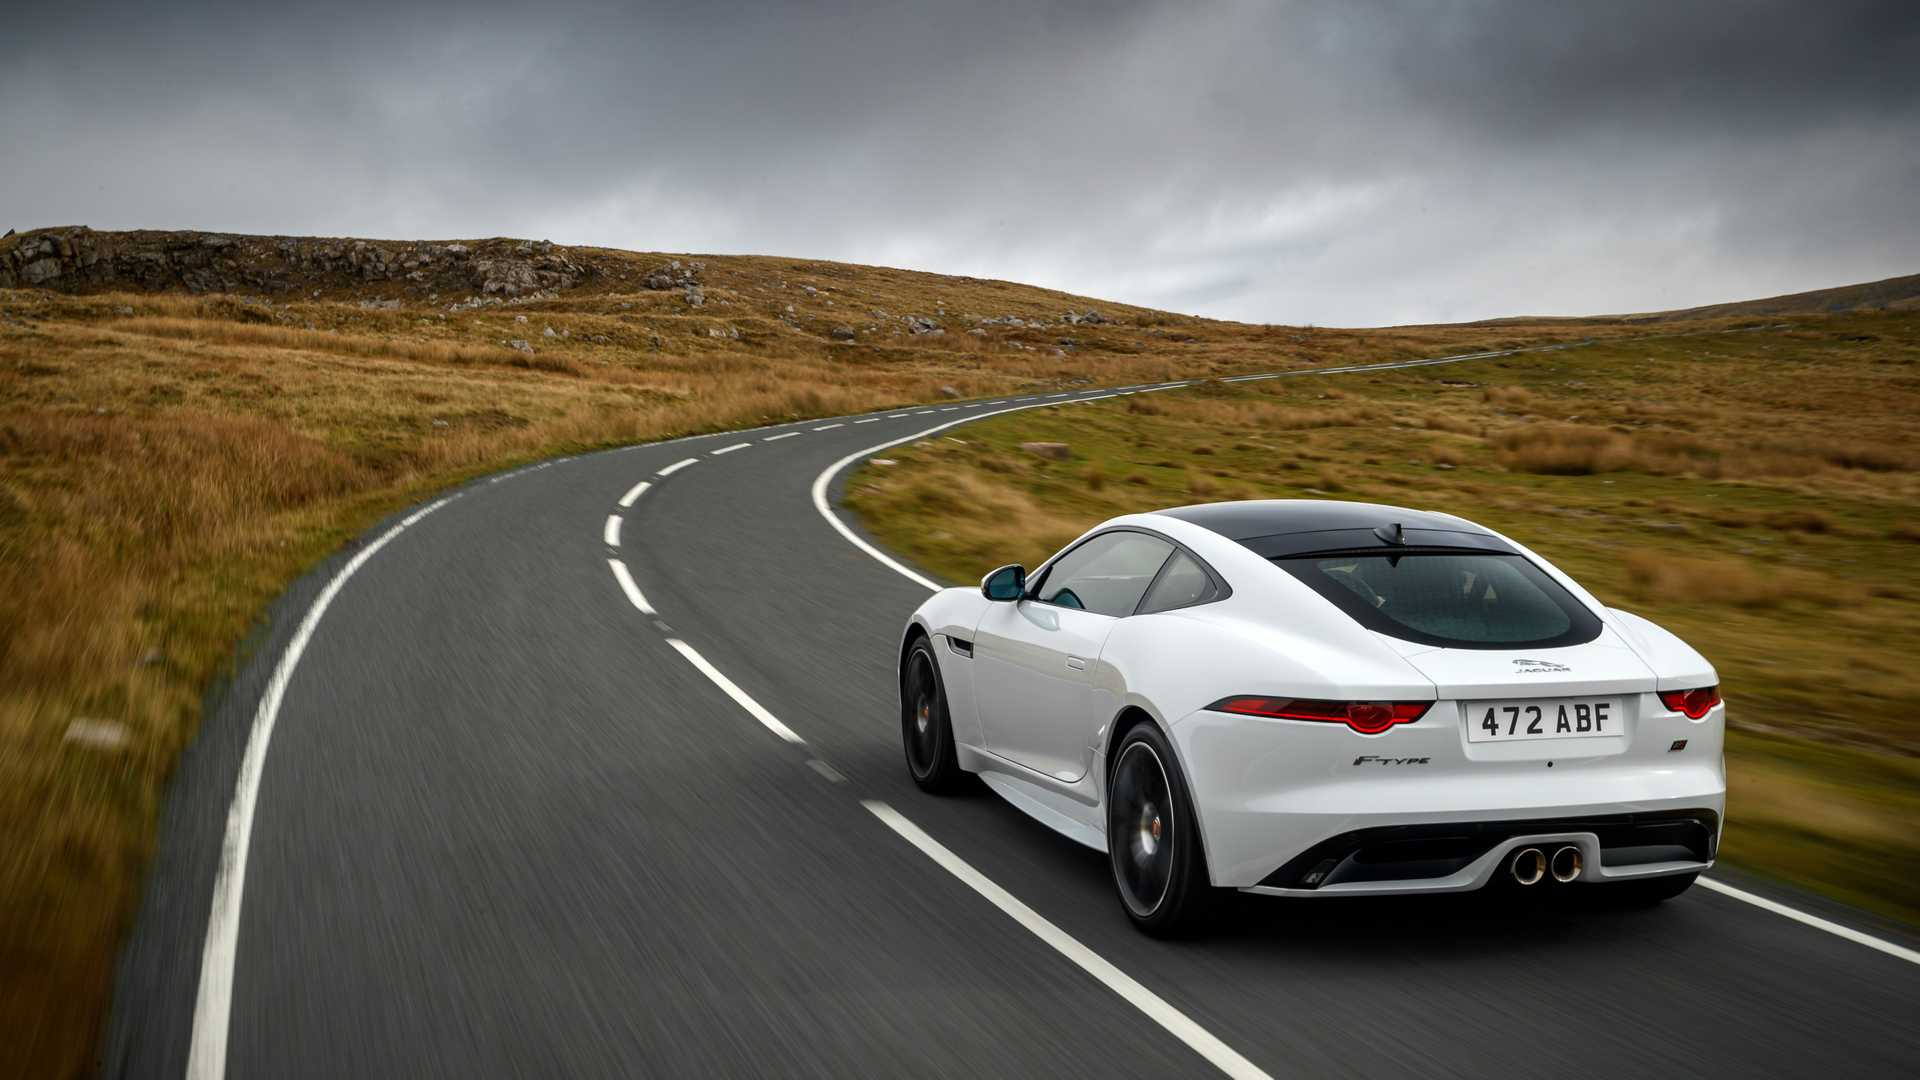 2020-jaguar-f-type-checkered-flag-edition (2)